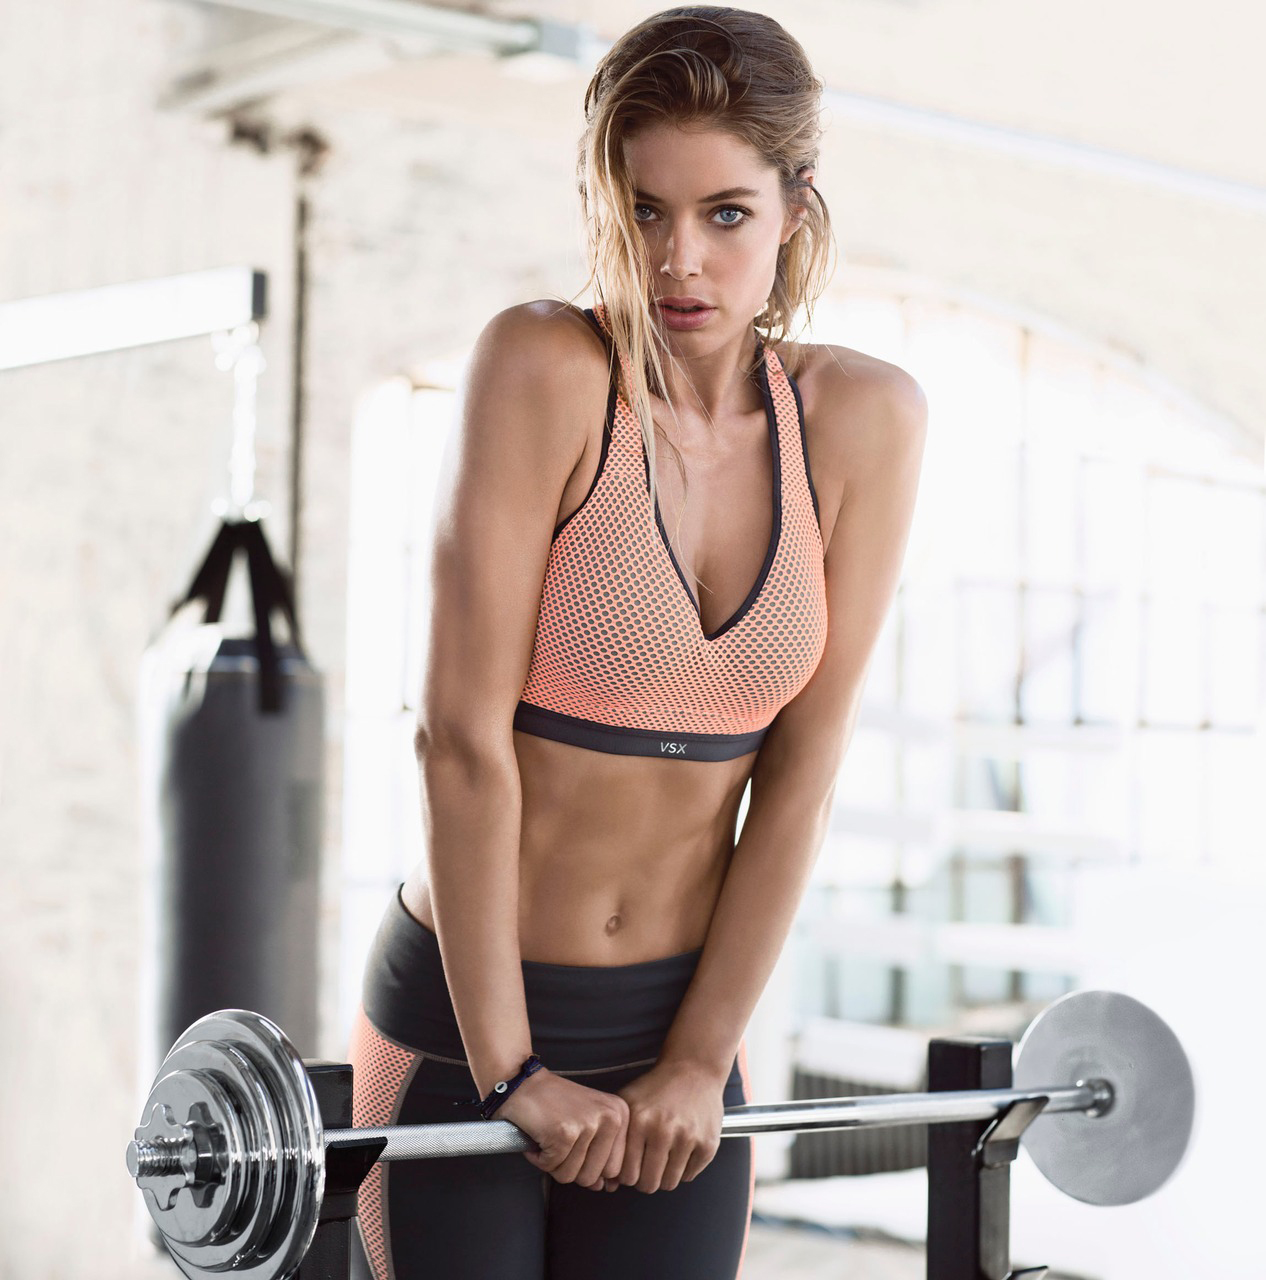 vs-sport-2014-doutzen-vsx-incredible-bra-sunset-mesh-victorias-secret-hi-res